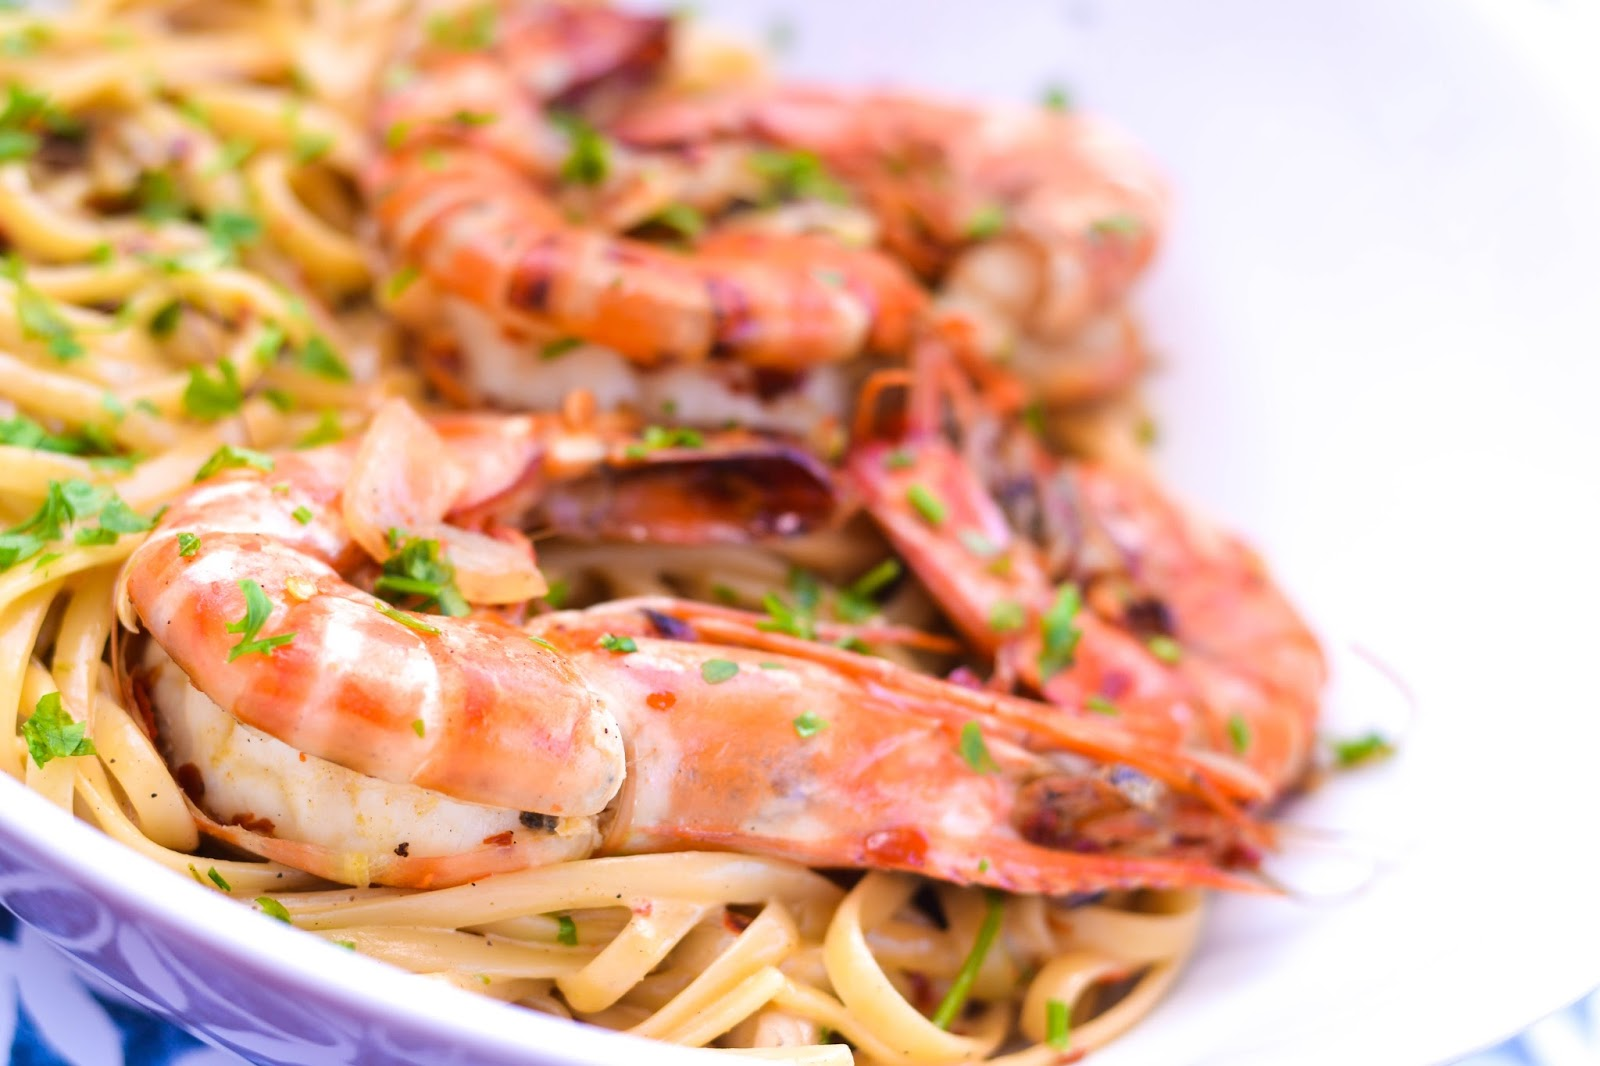 King Prawn Linguine with parsley